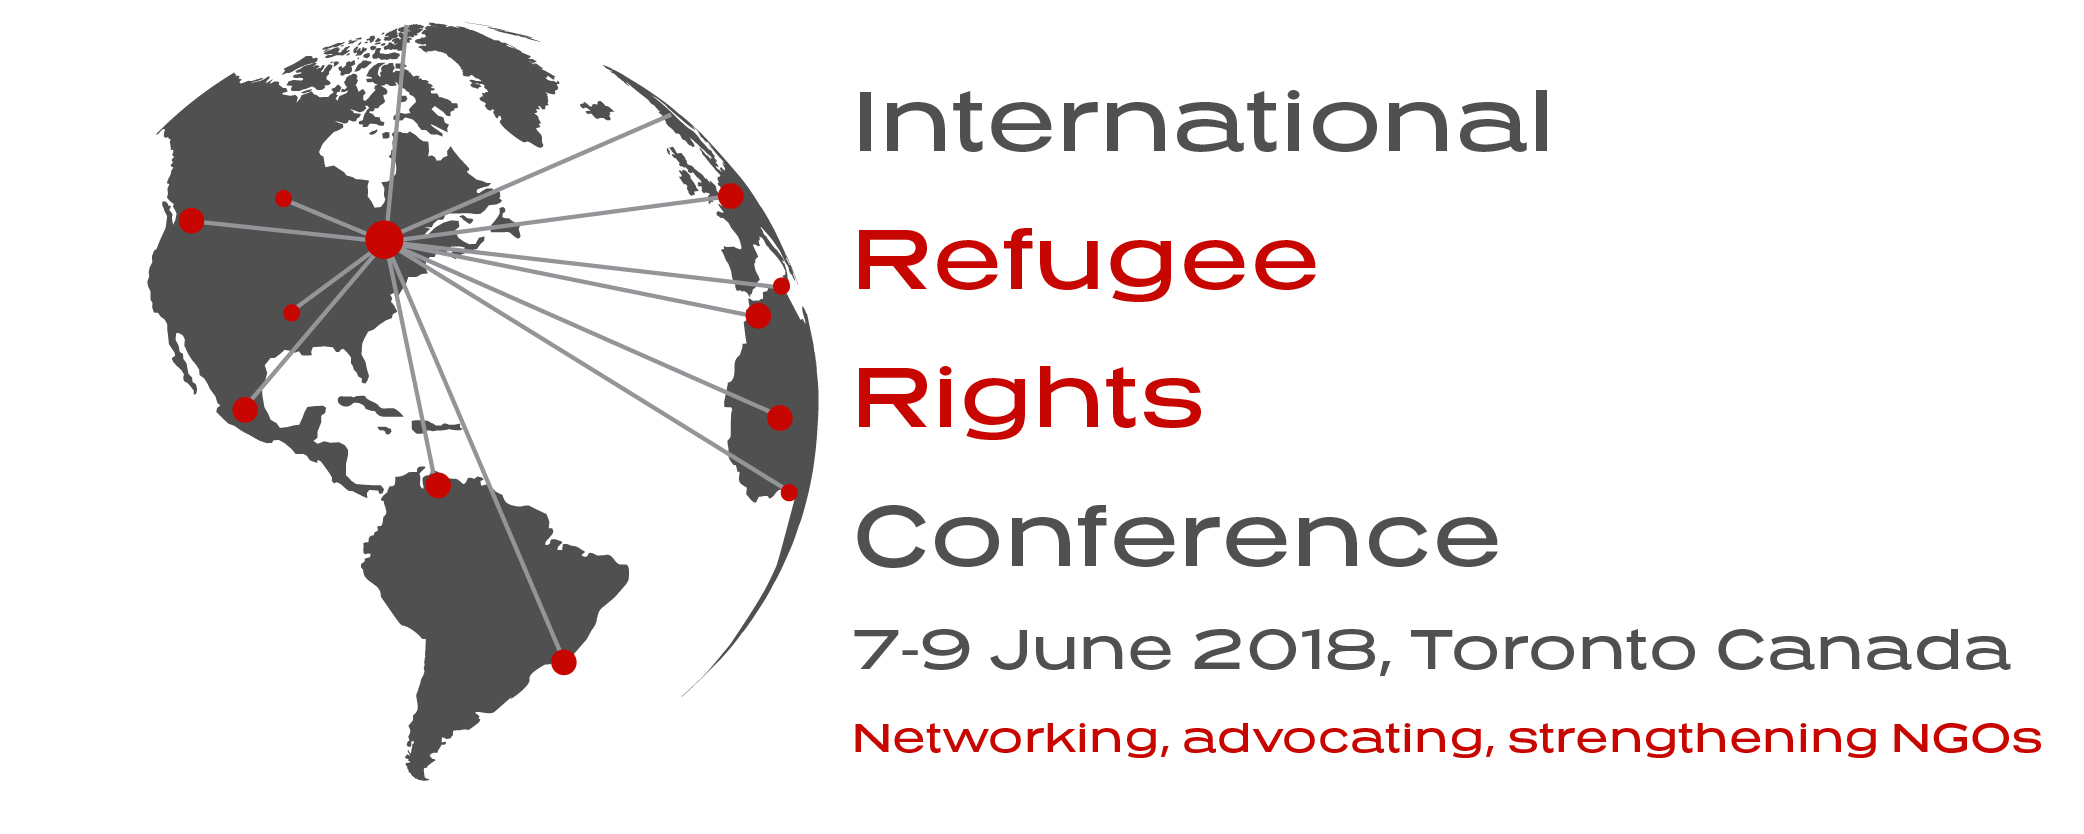 International Refugee Rights Conference